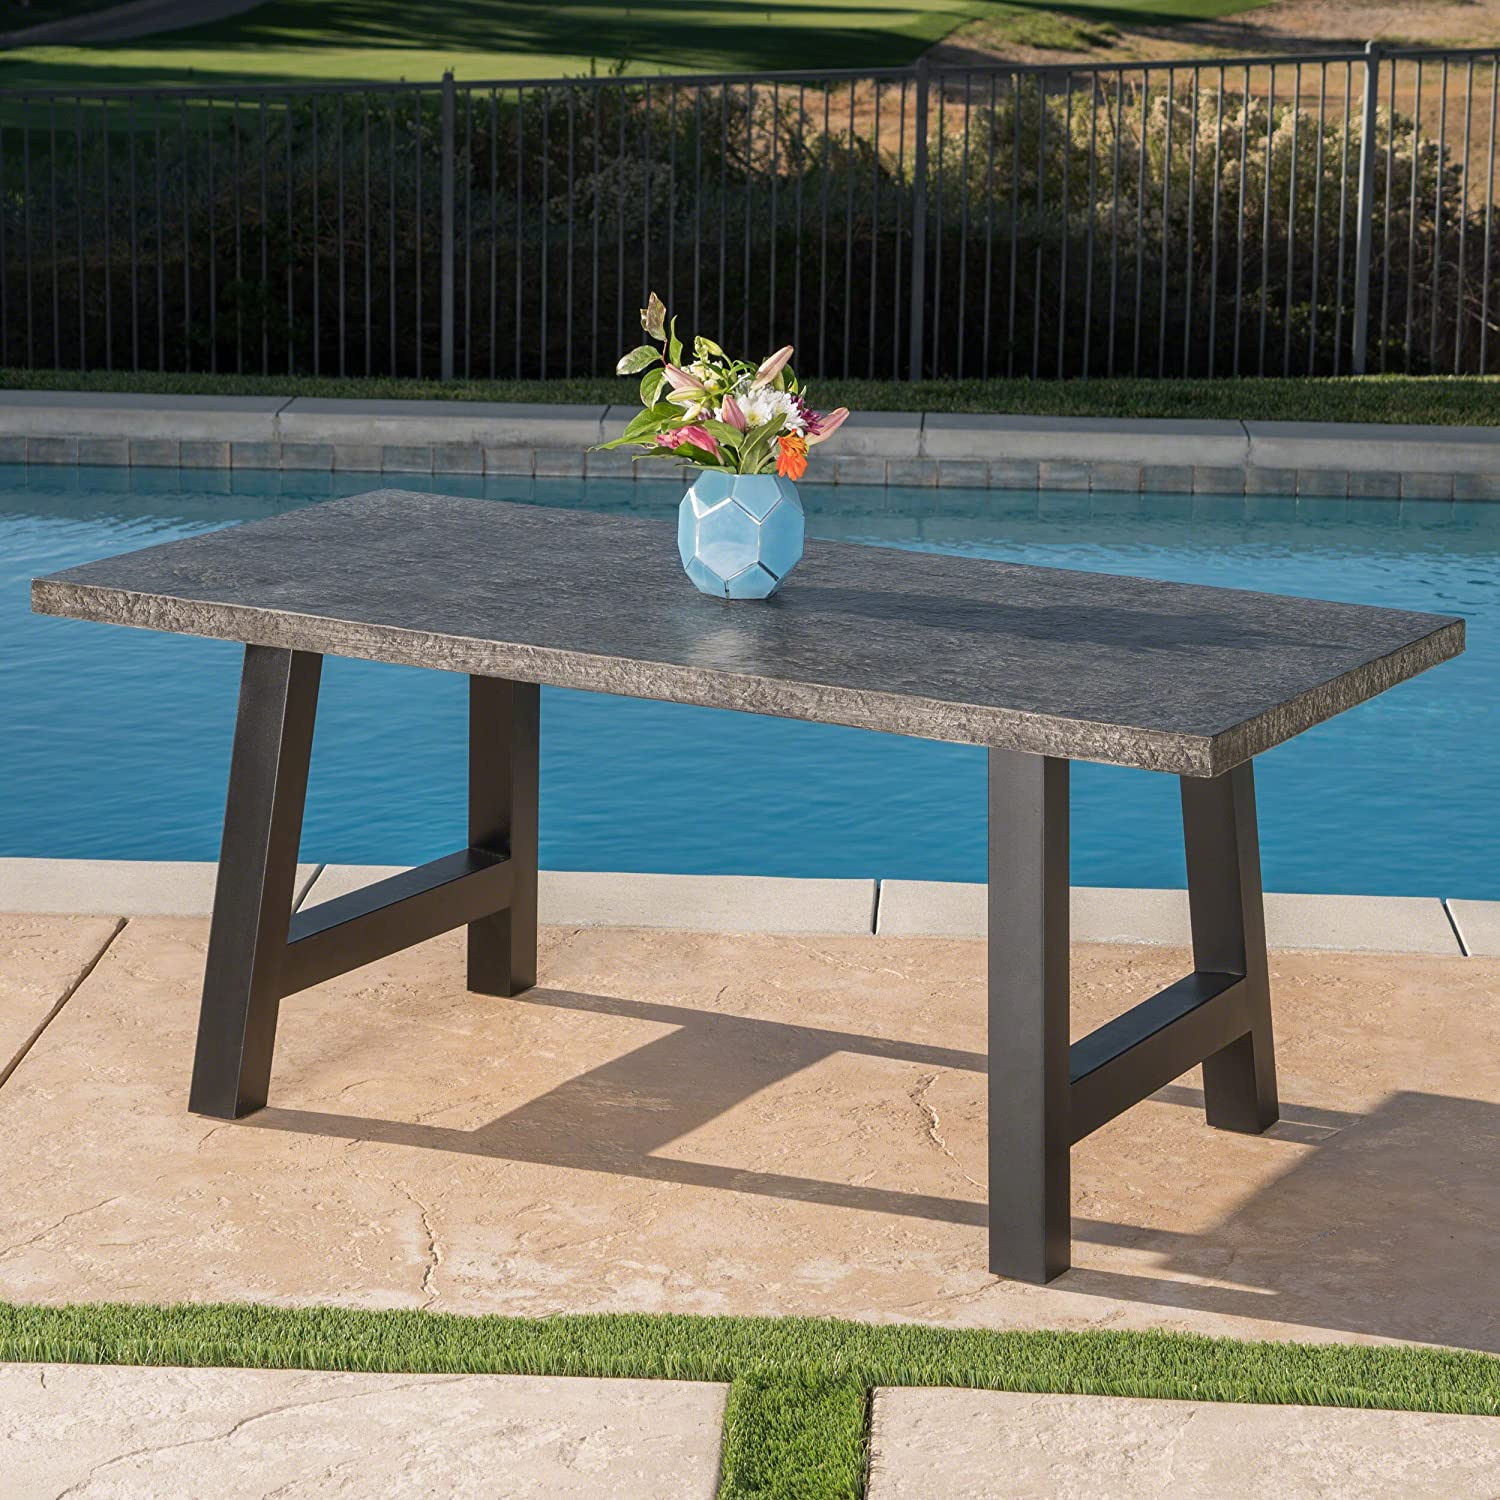 Christopher Knight Home 303926 Doris Outdoor Grey Stone Finish Light Weight Concrete Dining Table, Black